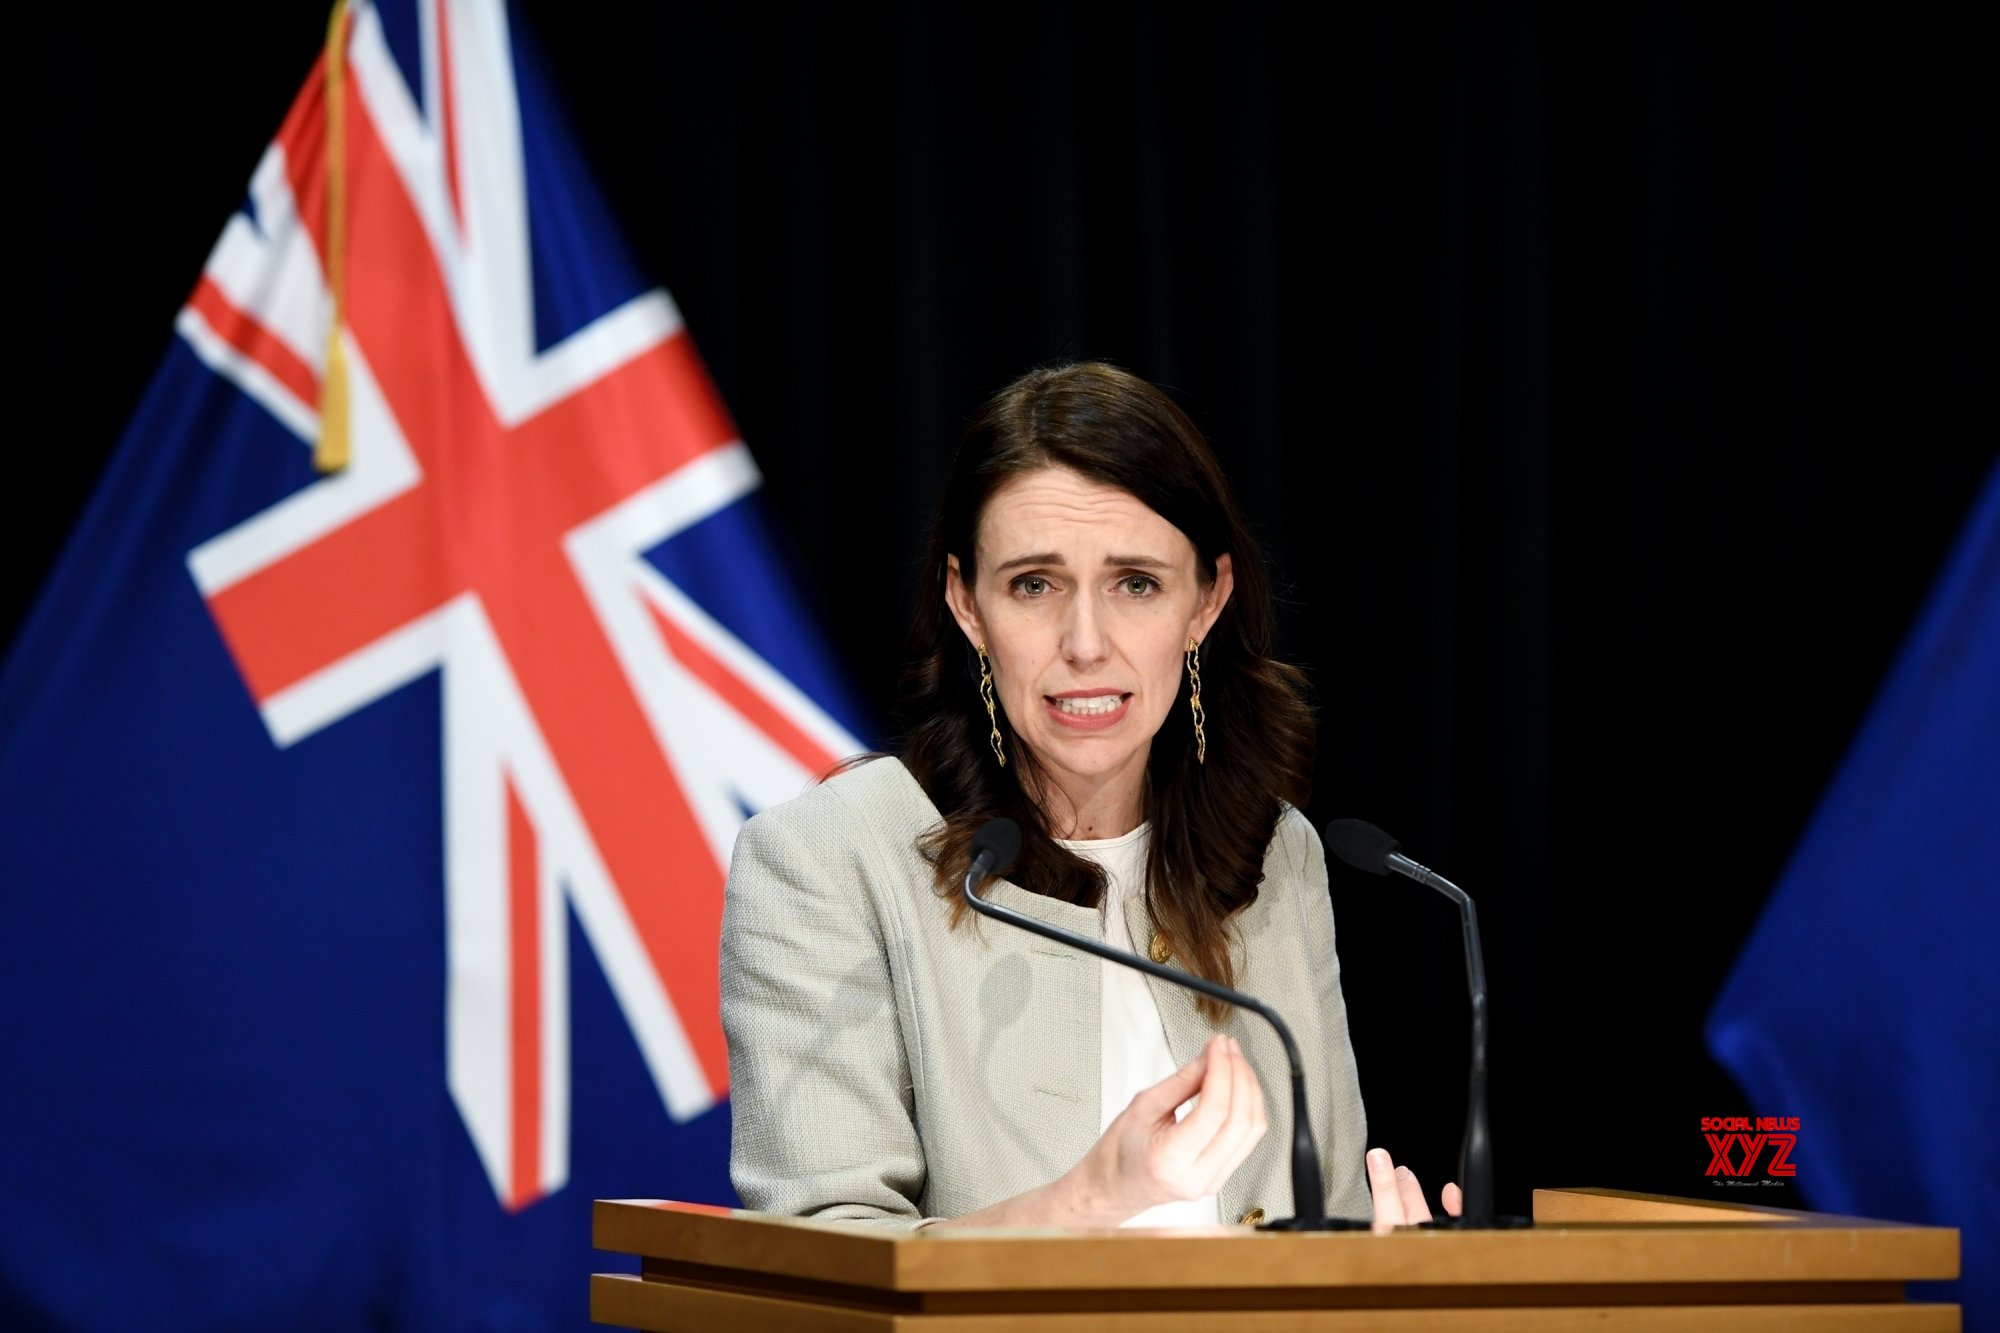 NZ PM expects to form new govt before official poll results